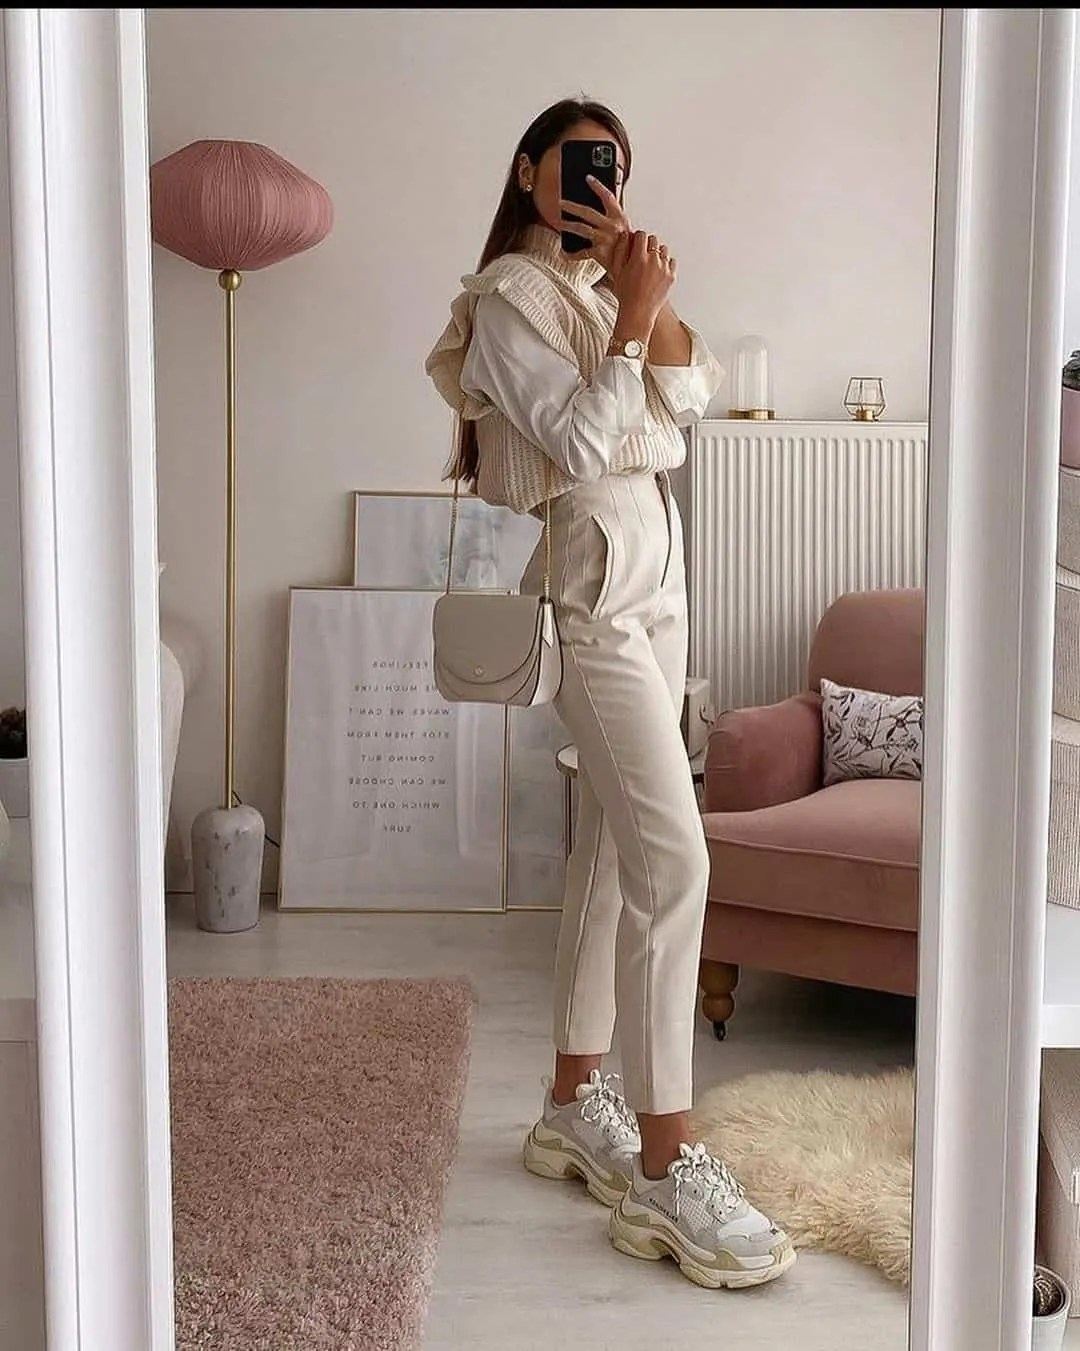 100+ fashion inspo outfits that you have to see no matter what your style is 51